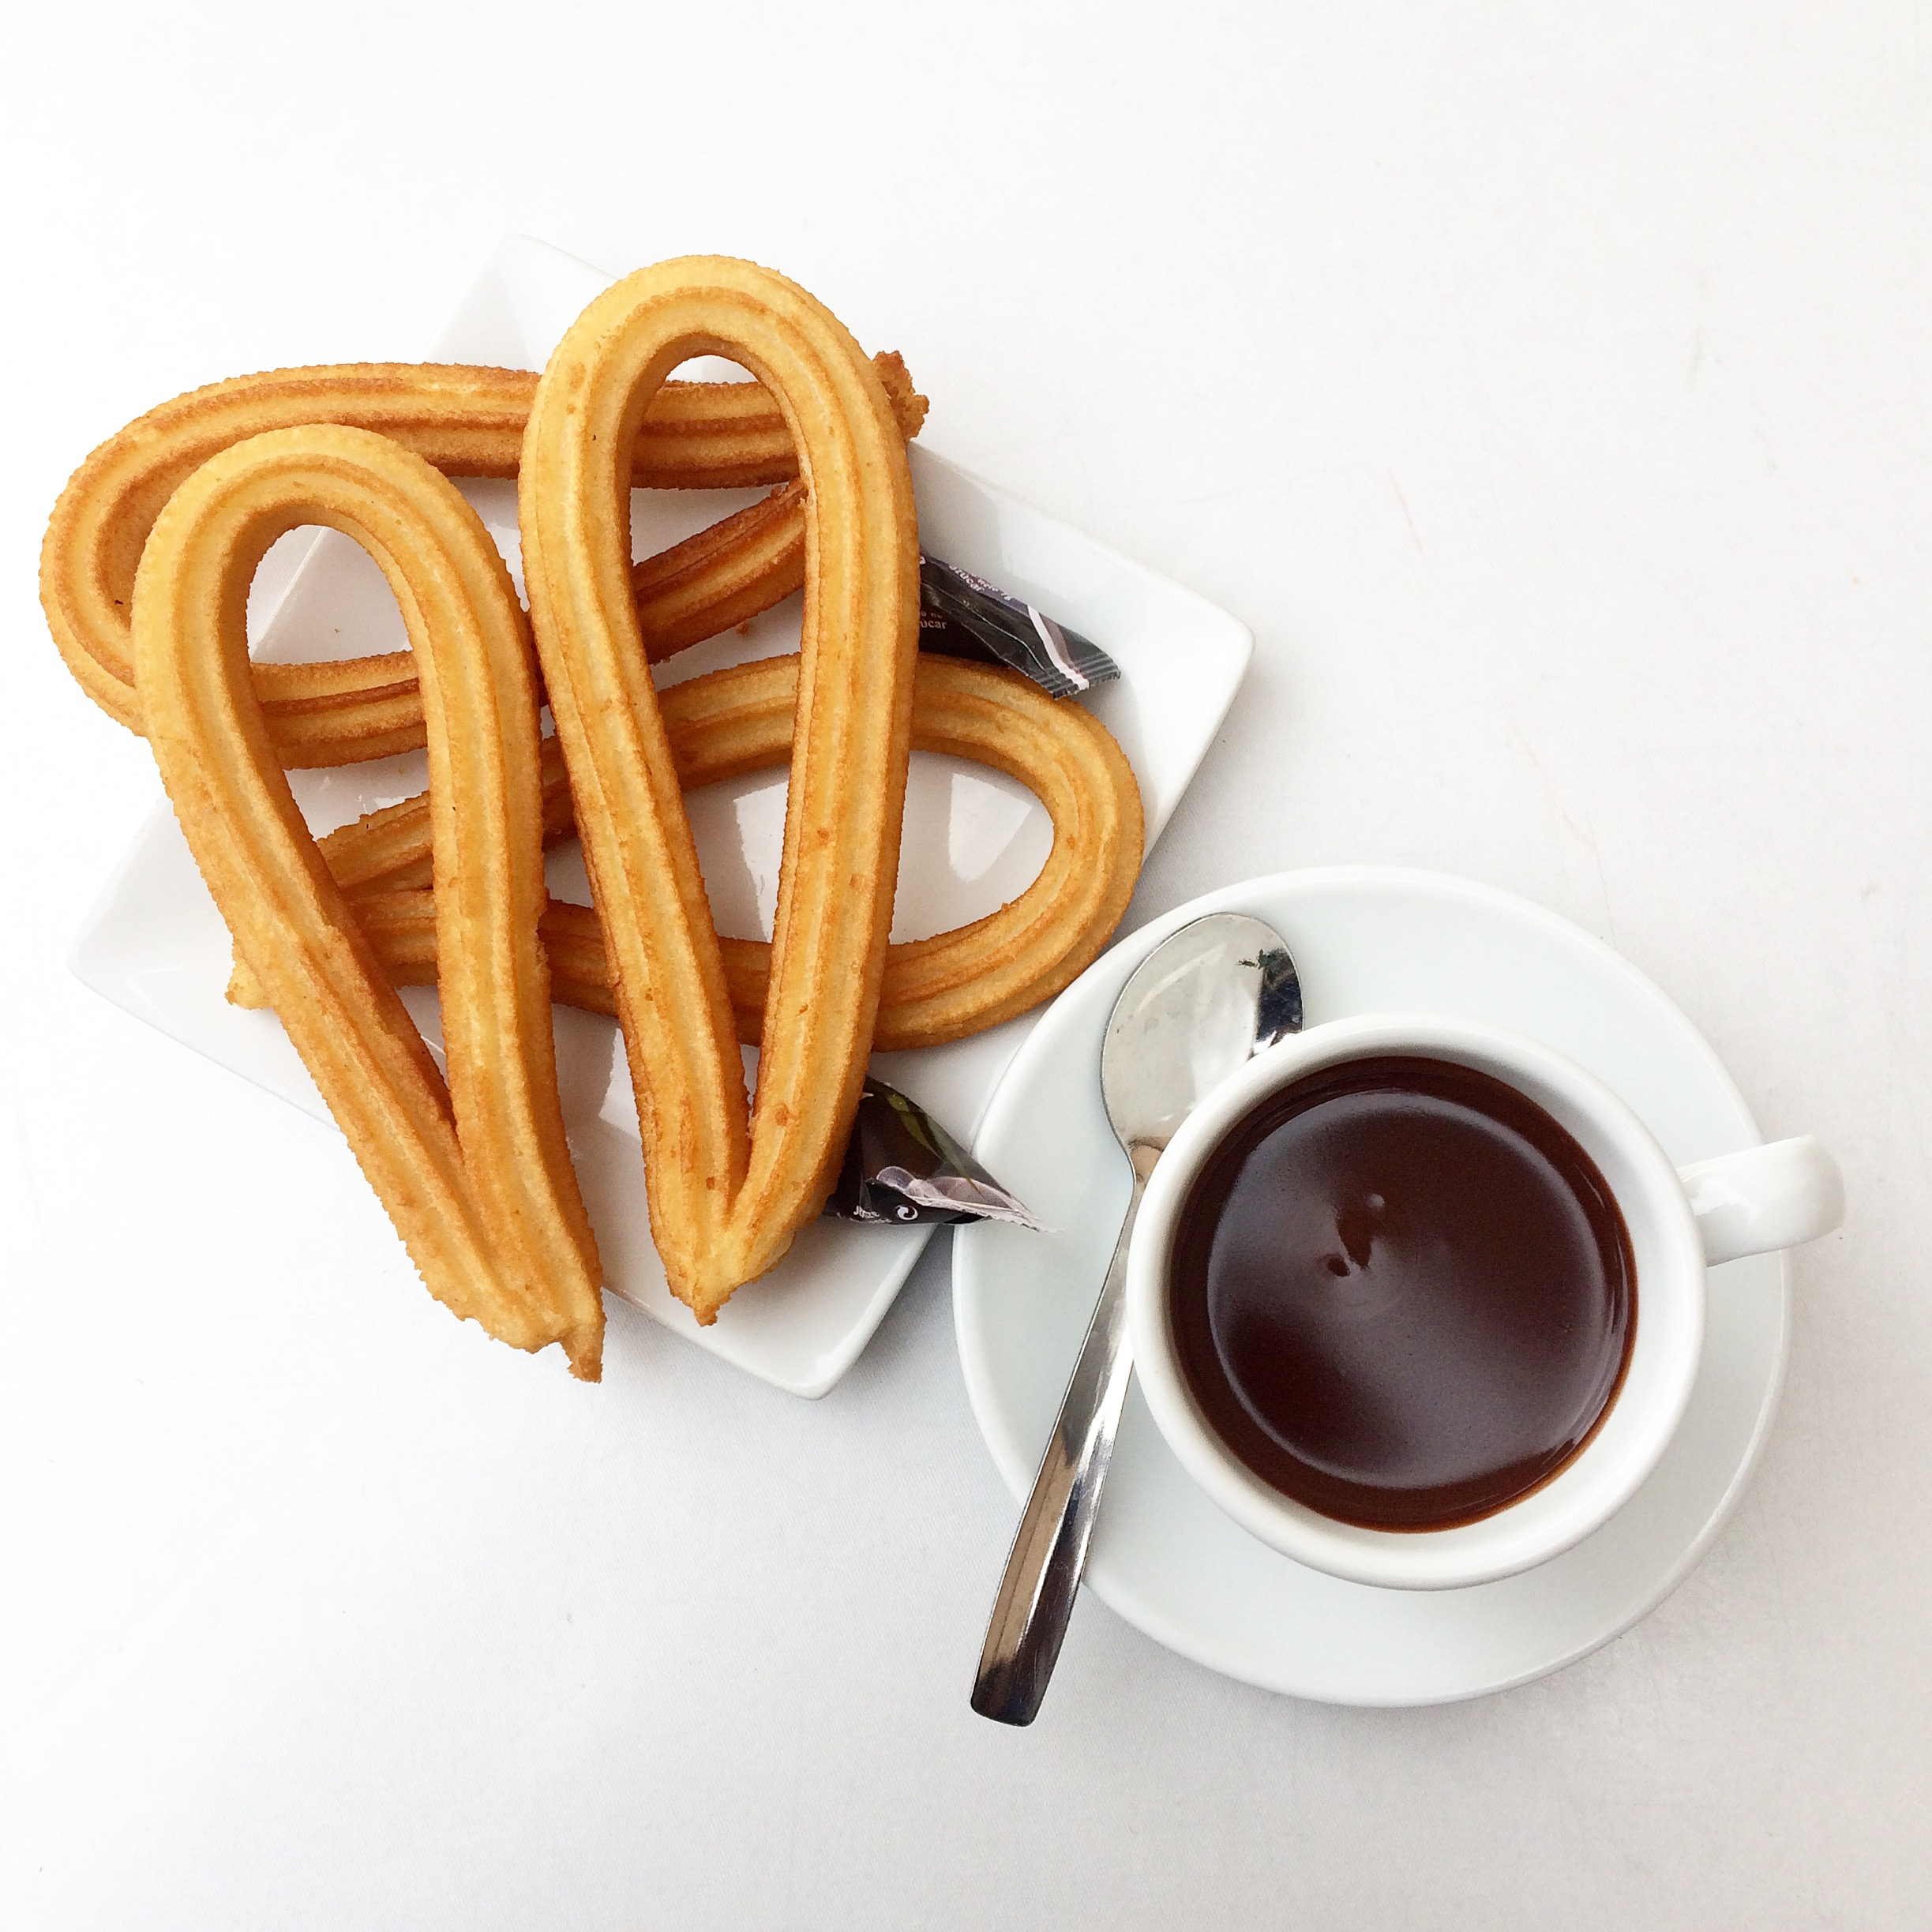 dayka-robinson-blog-churros-y-chocolate-madrid-spain-europe-solo-travel-black-woman-october-2016